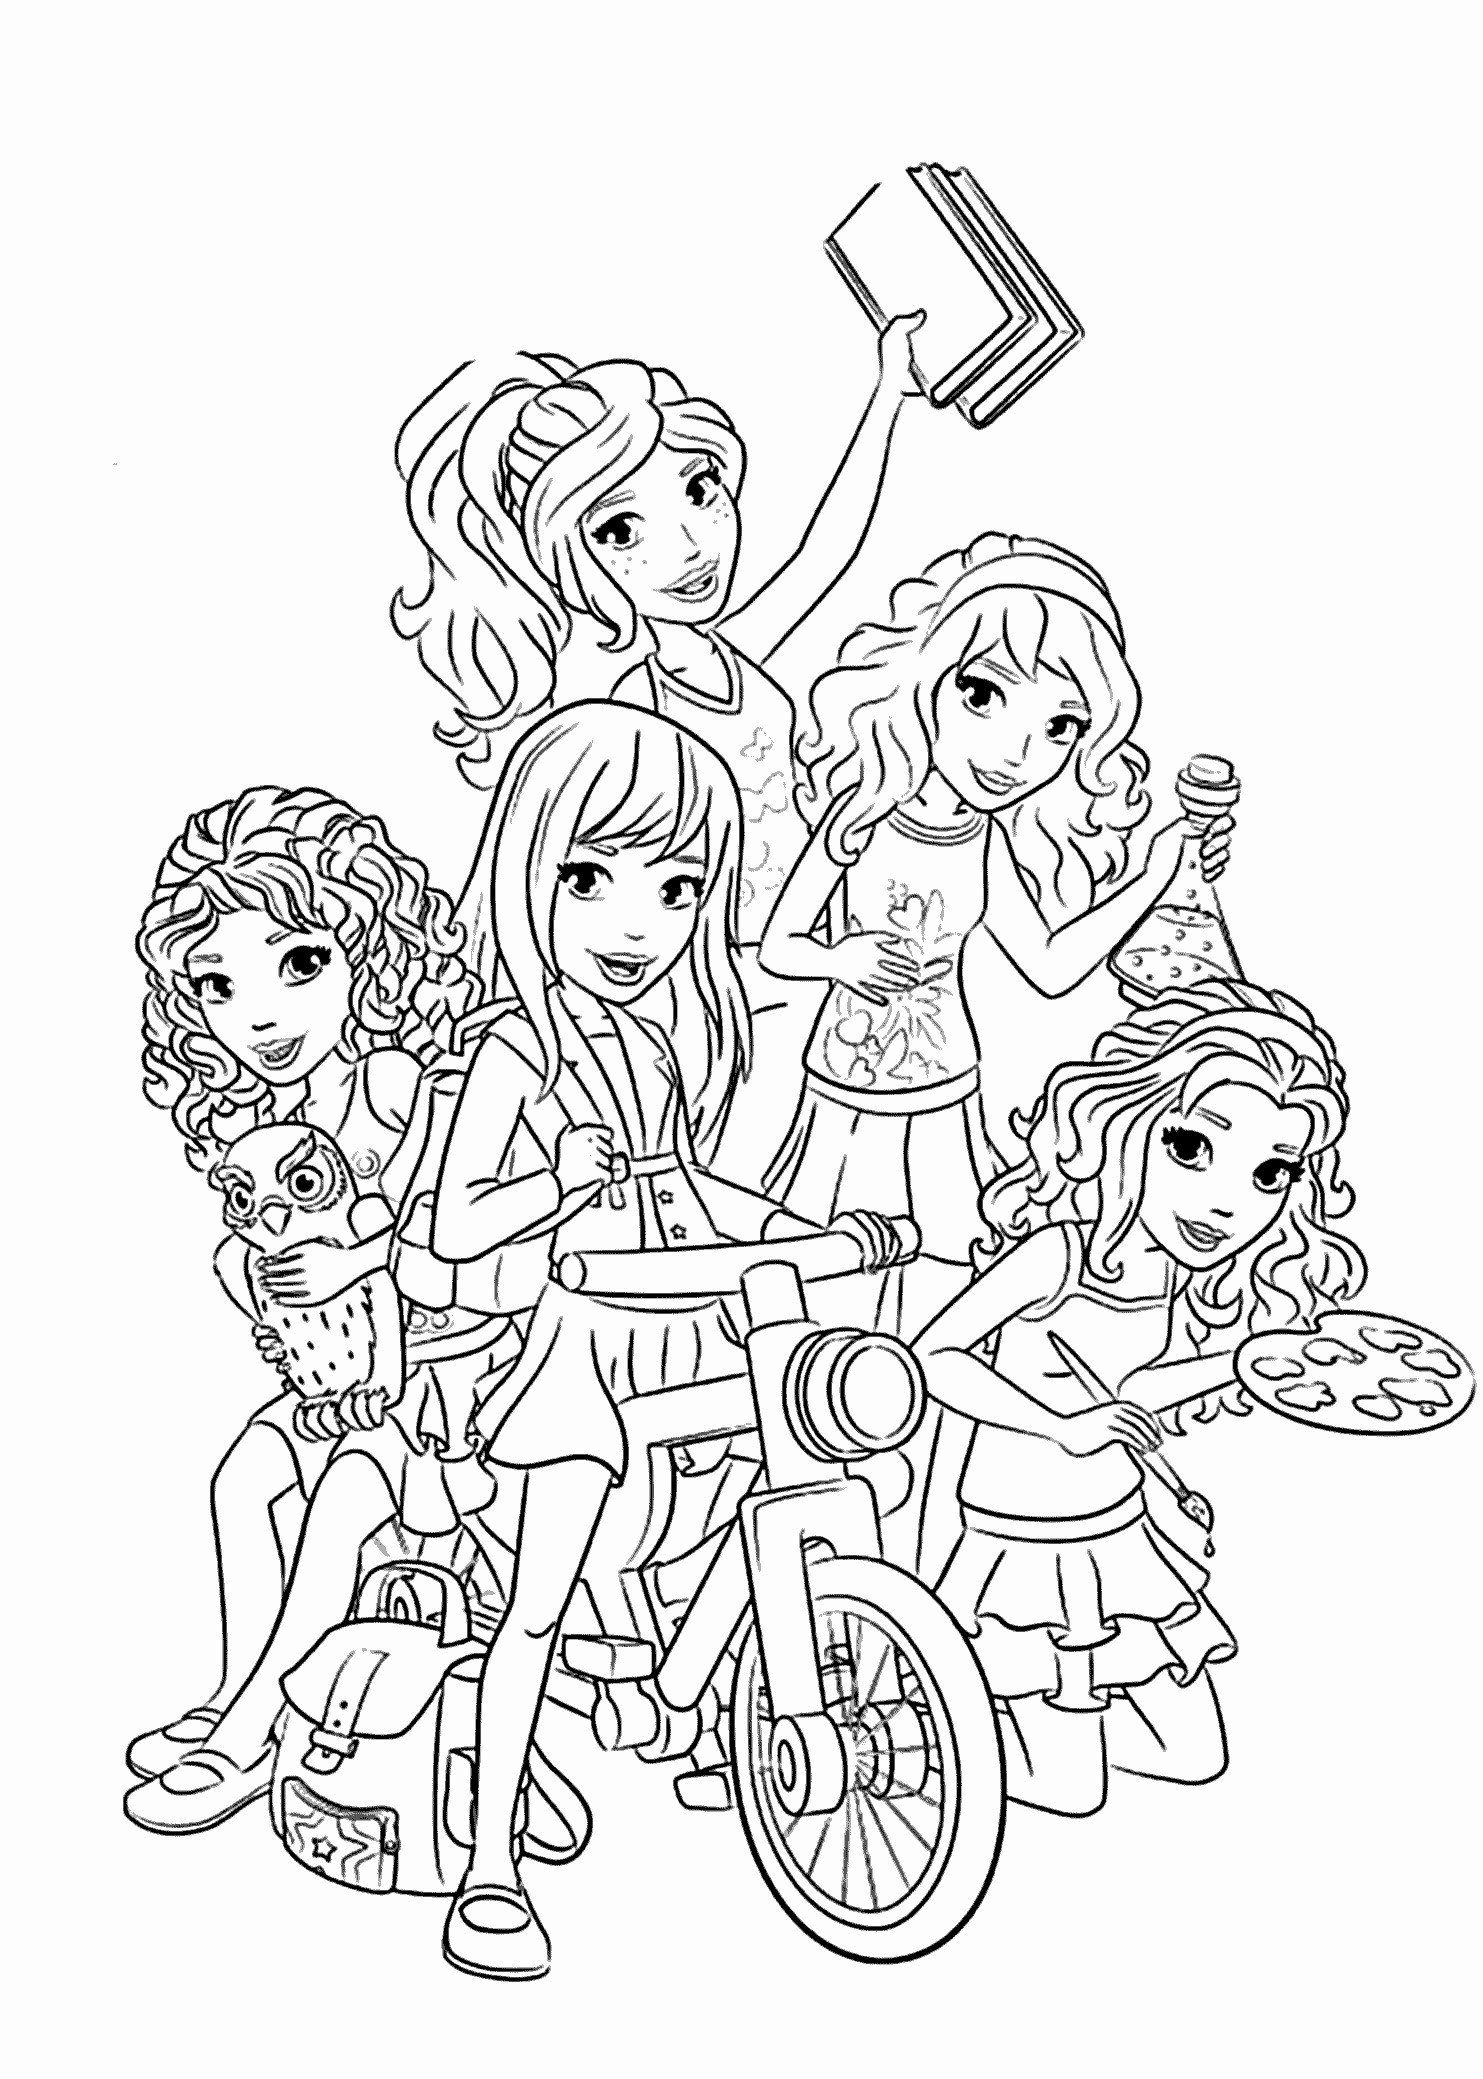 Lego Elves Coloring Pages Beautiful Lego Friends Ausmalbilder Fotos 35 Lego Elves Ausmalbilder Lego Coloring Pages Lego Coloring Free Kids Coloring Pages